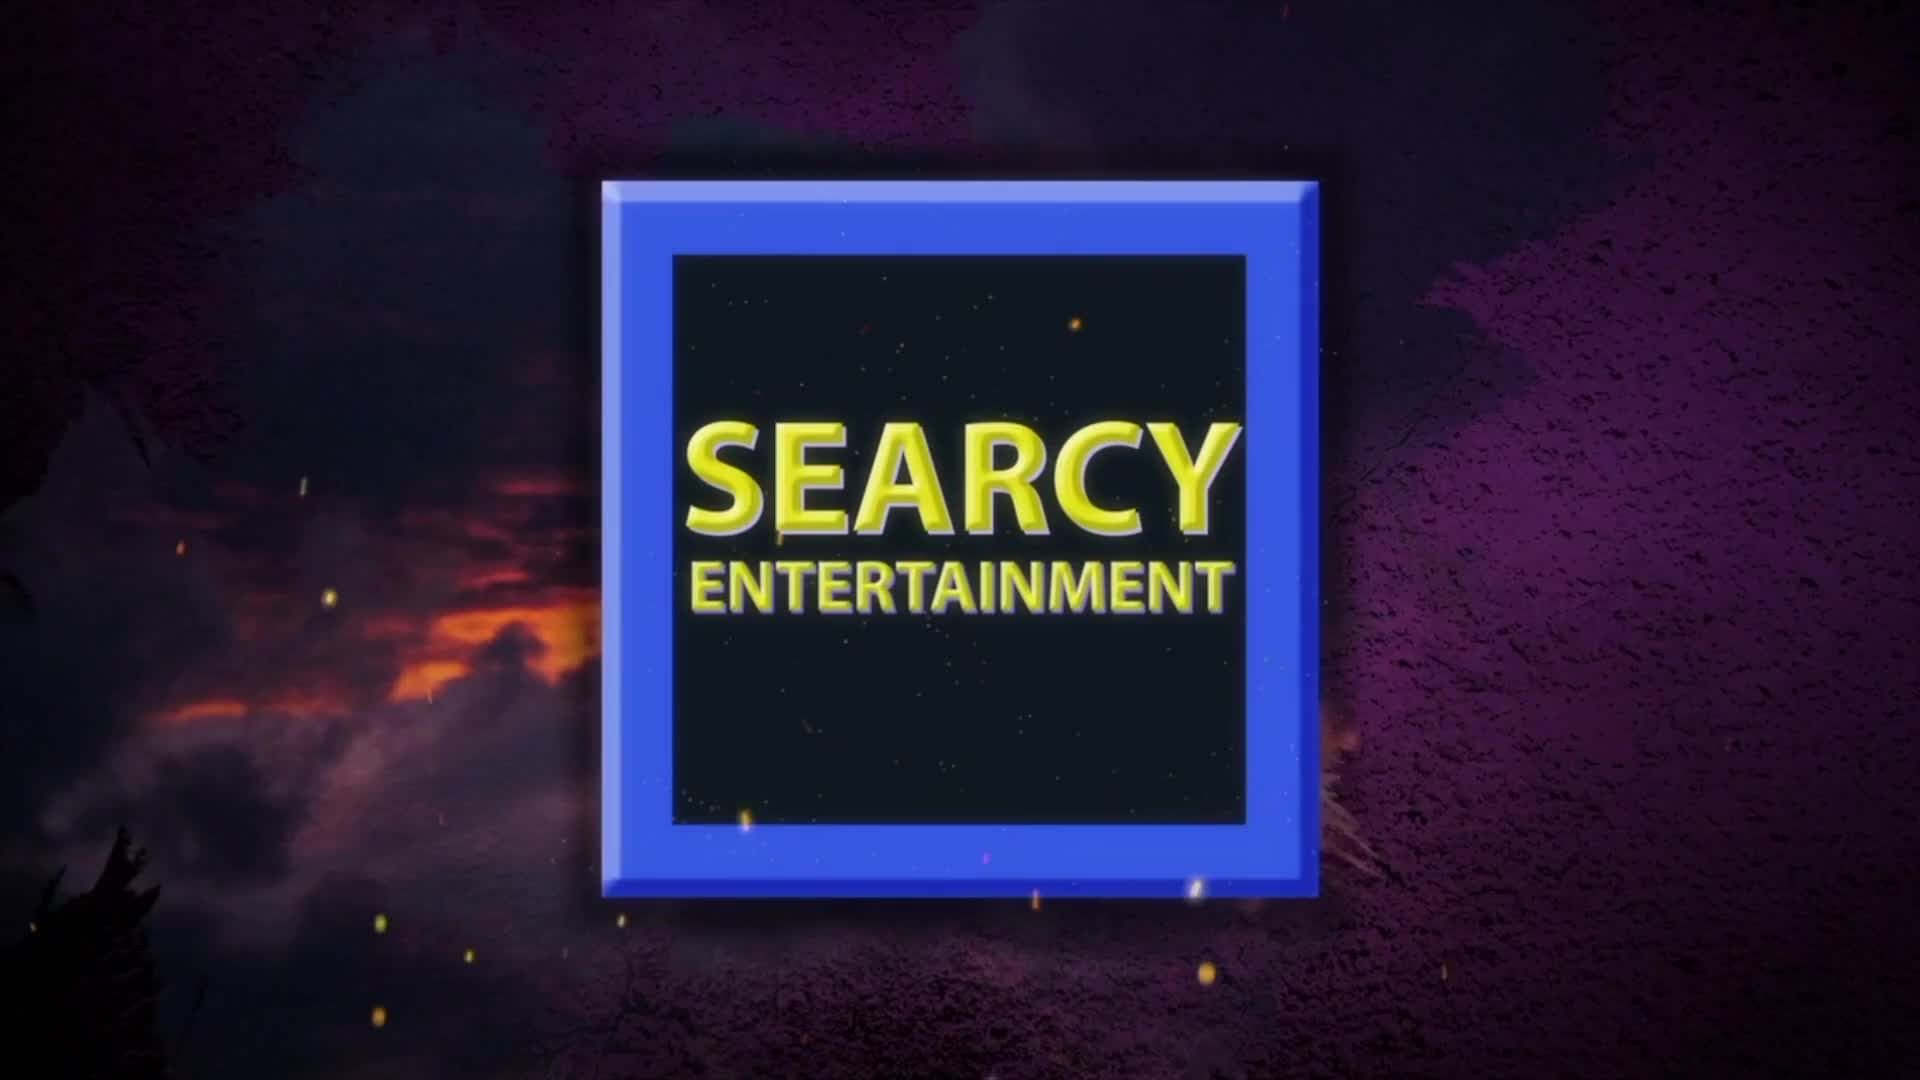 "SEARCY ENTERTAINMENT - EXPERIENCE THE MUSIC WITH TIM SEARCY LIVE ""SUPERMAN (IT'S NOT EASY)"""